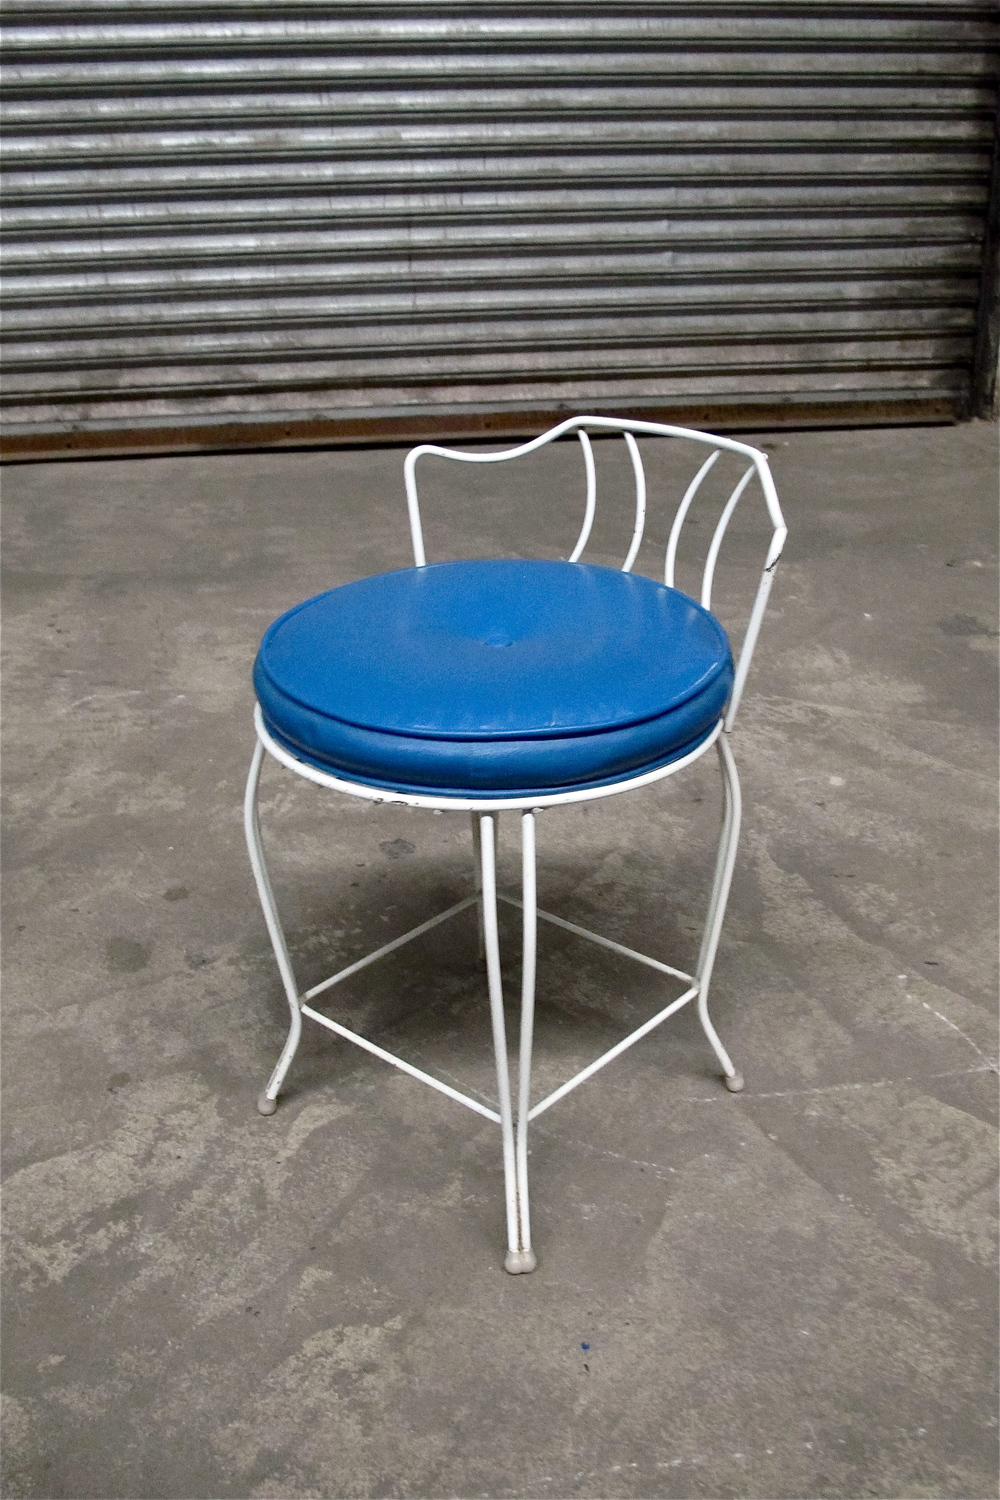 Blue Short White Parlor Chair $35